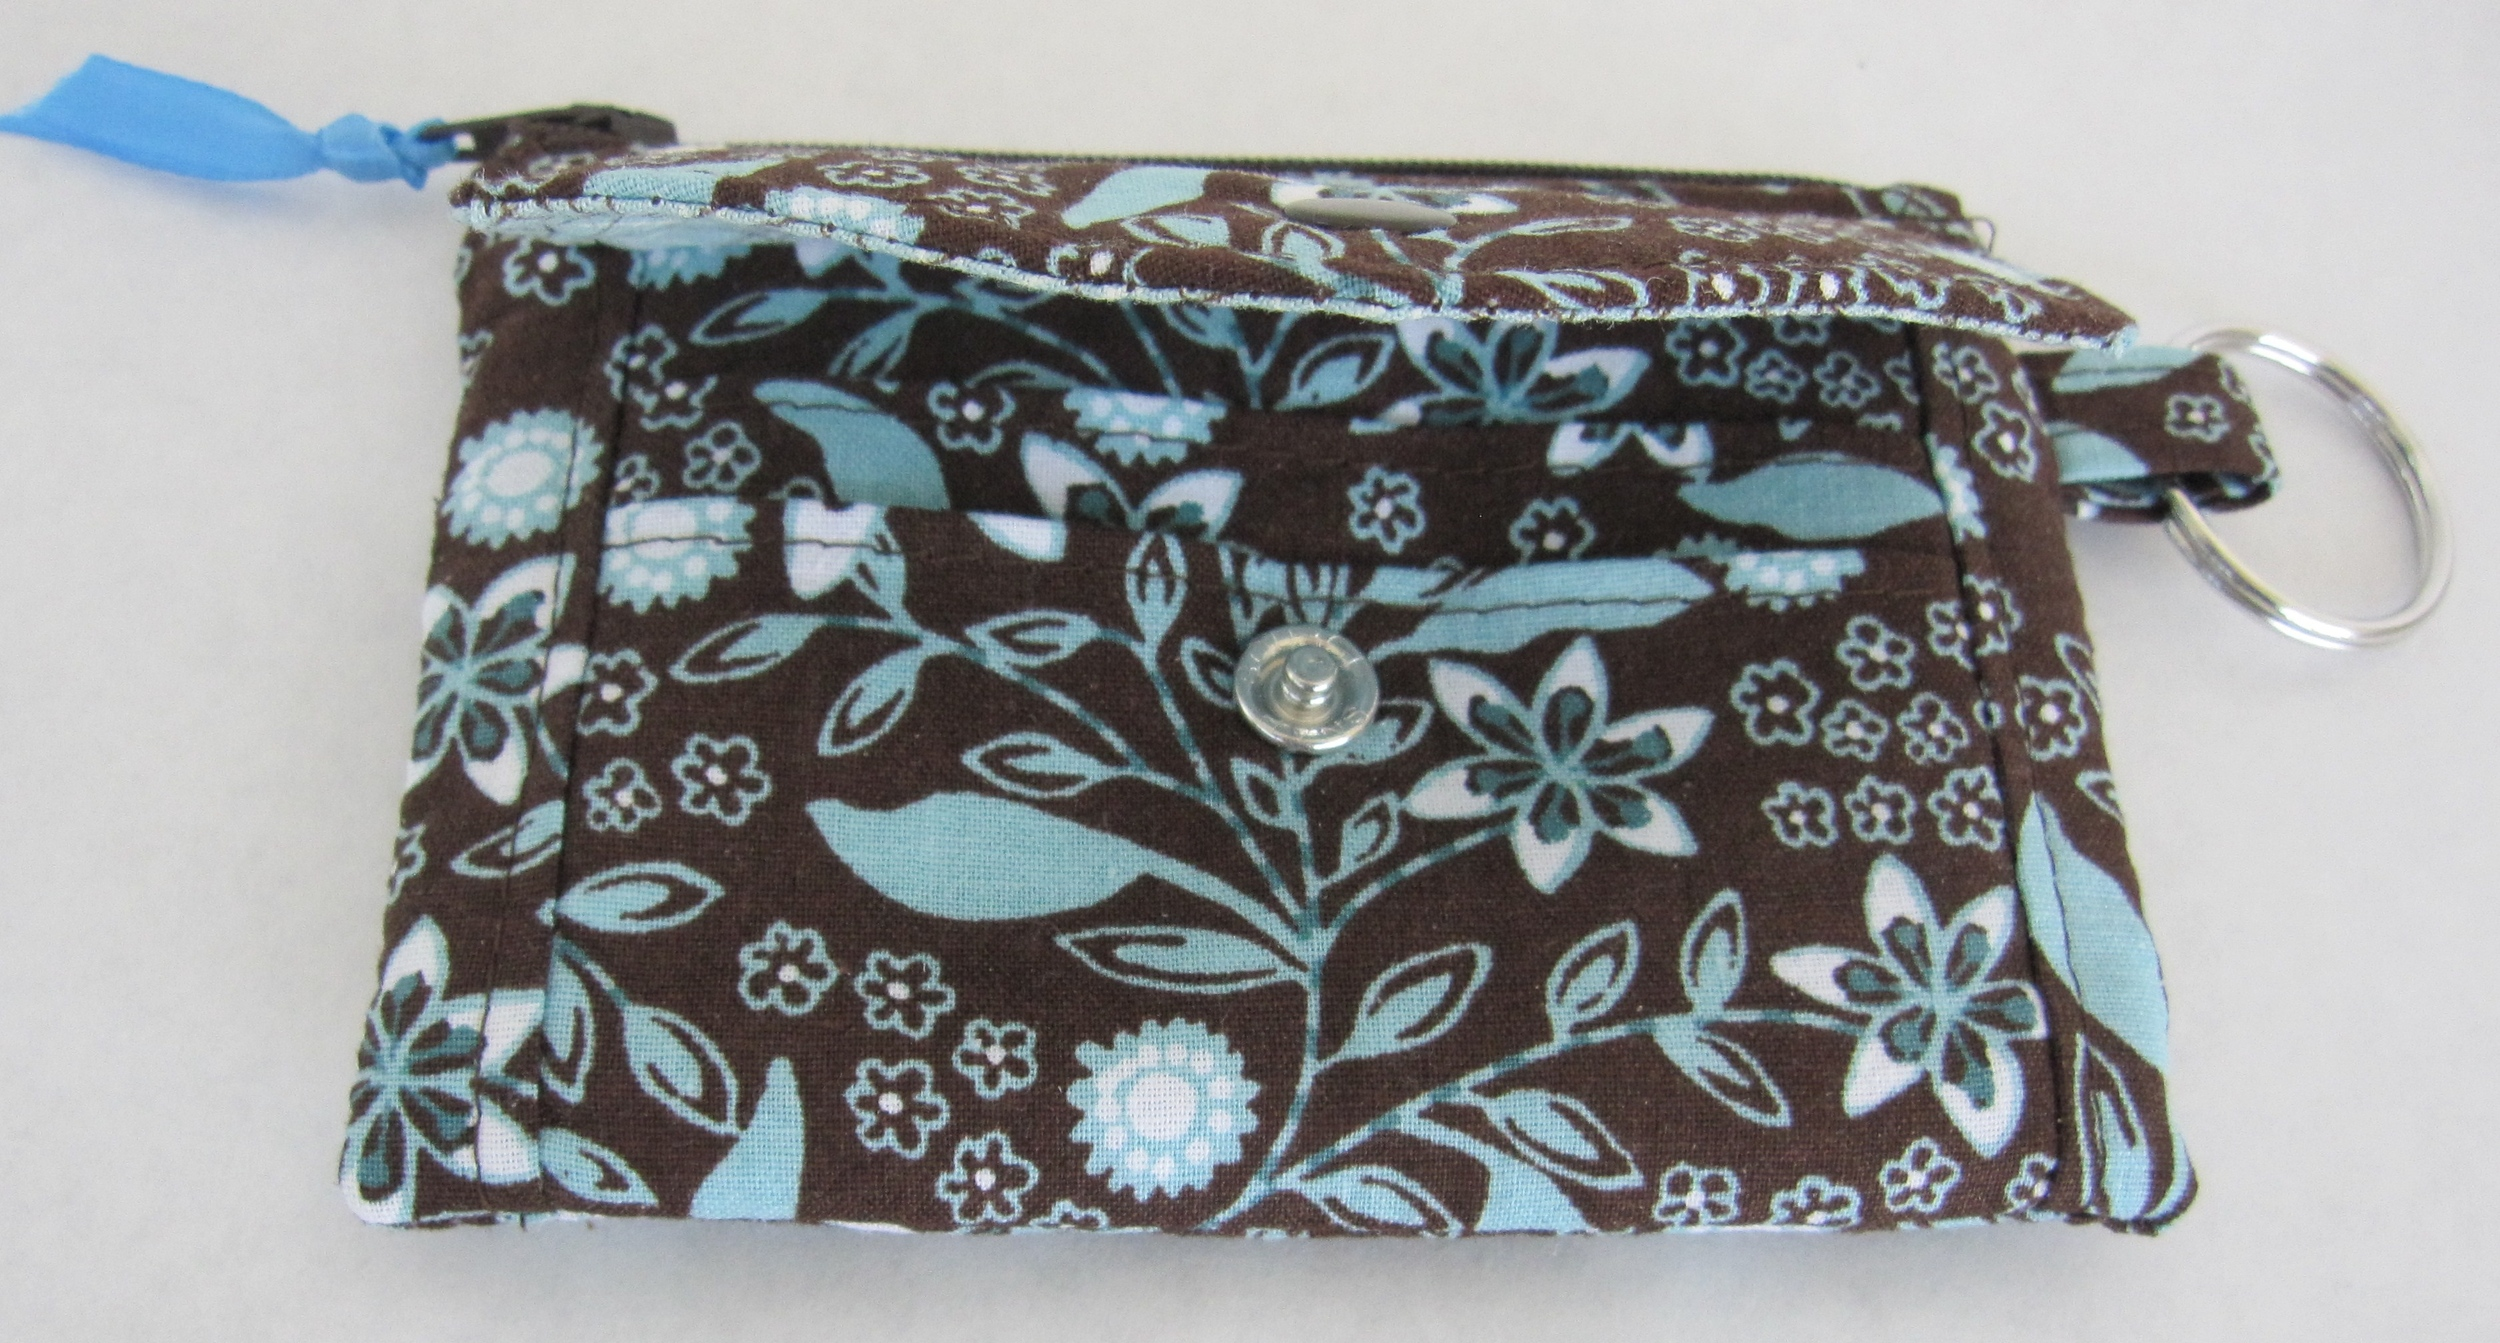 Two pockets for credit cards or other cash cards are securely hidden under the cute envelope flap.